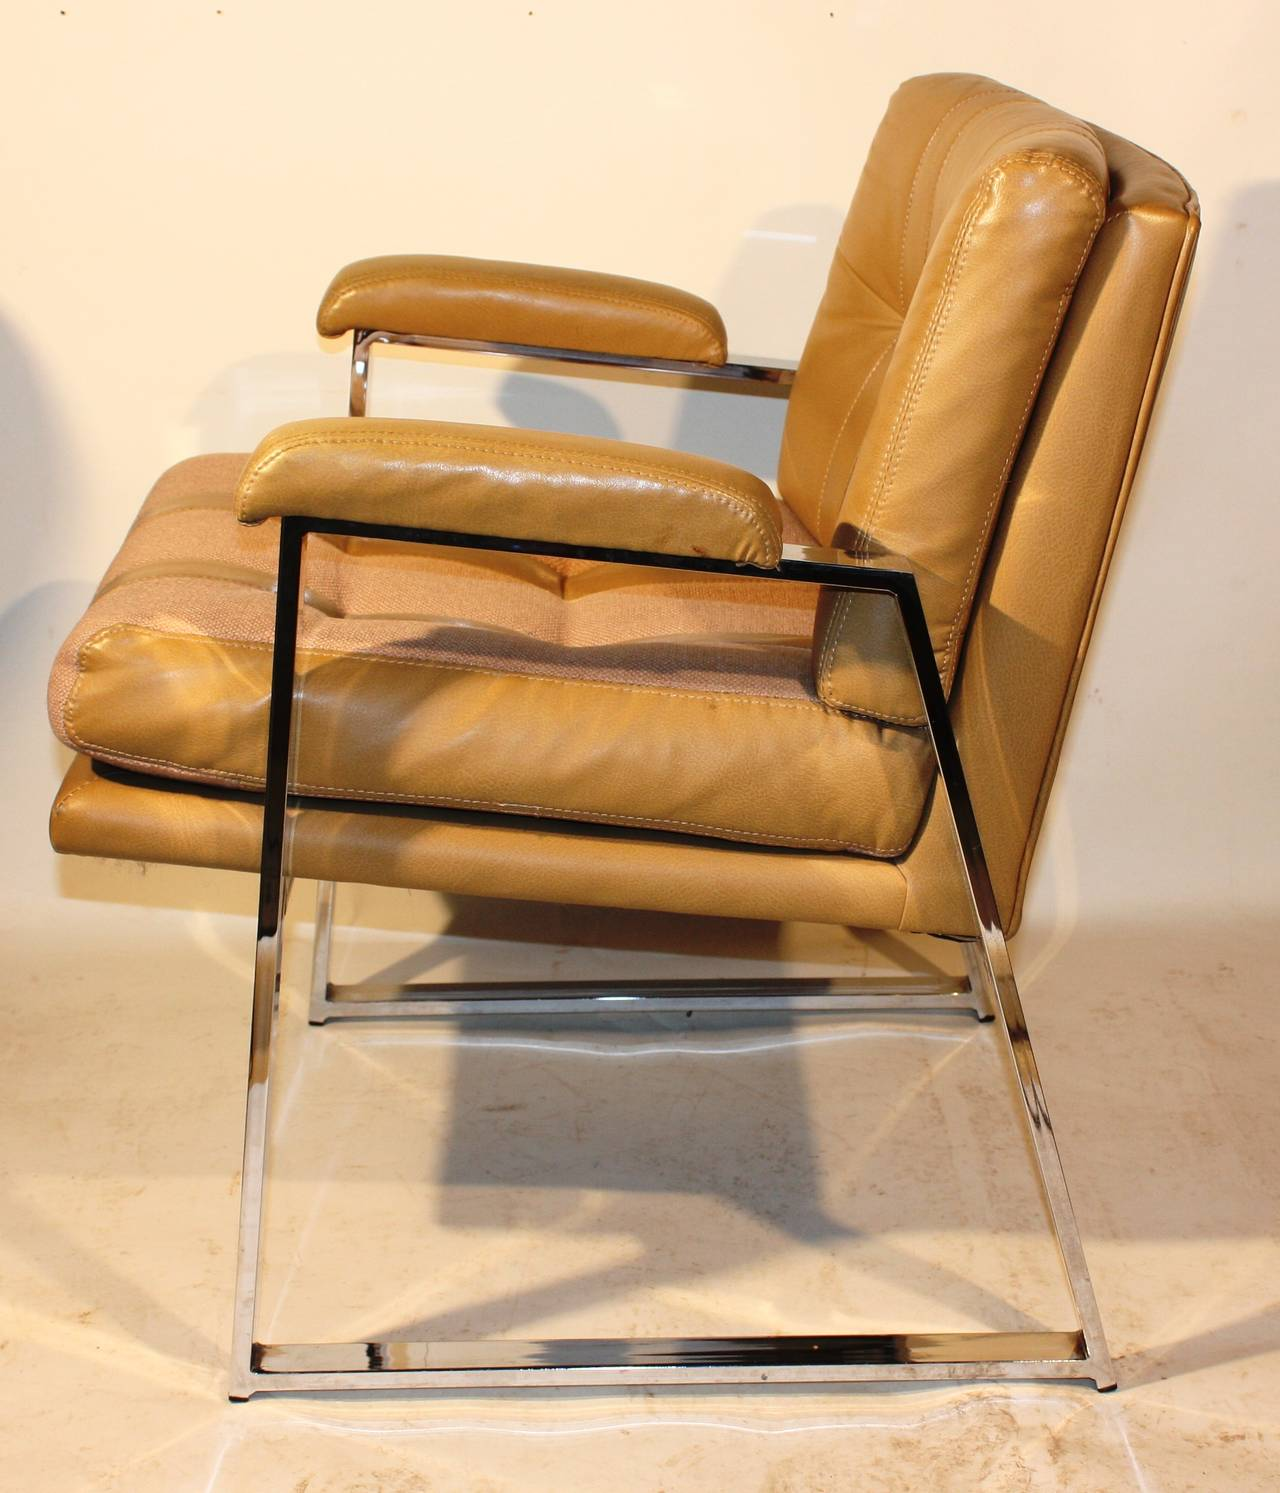 Genial A Nice Pair Of Mid Century Milo Baughman Style Chrome Armchairs In Tan  Vinyl And